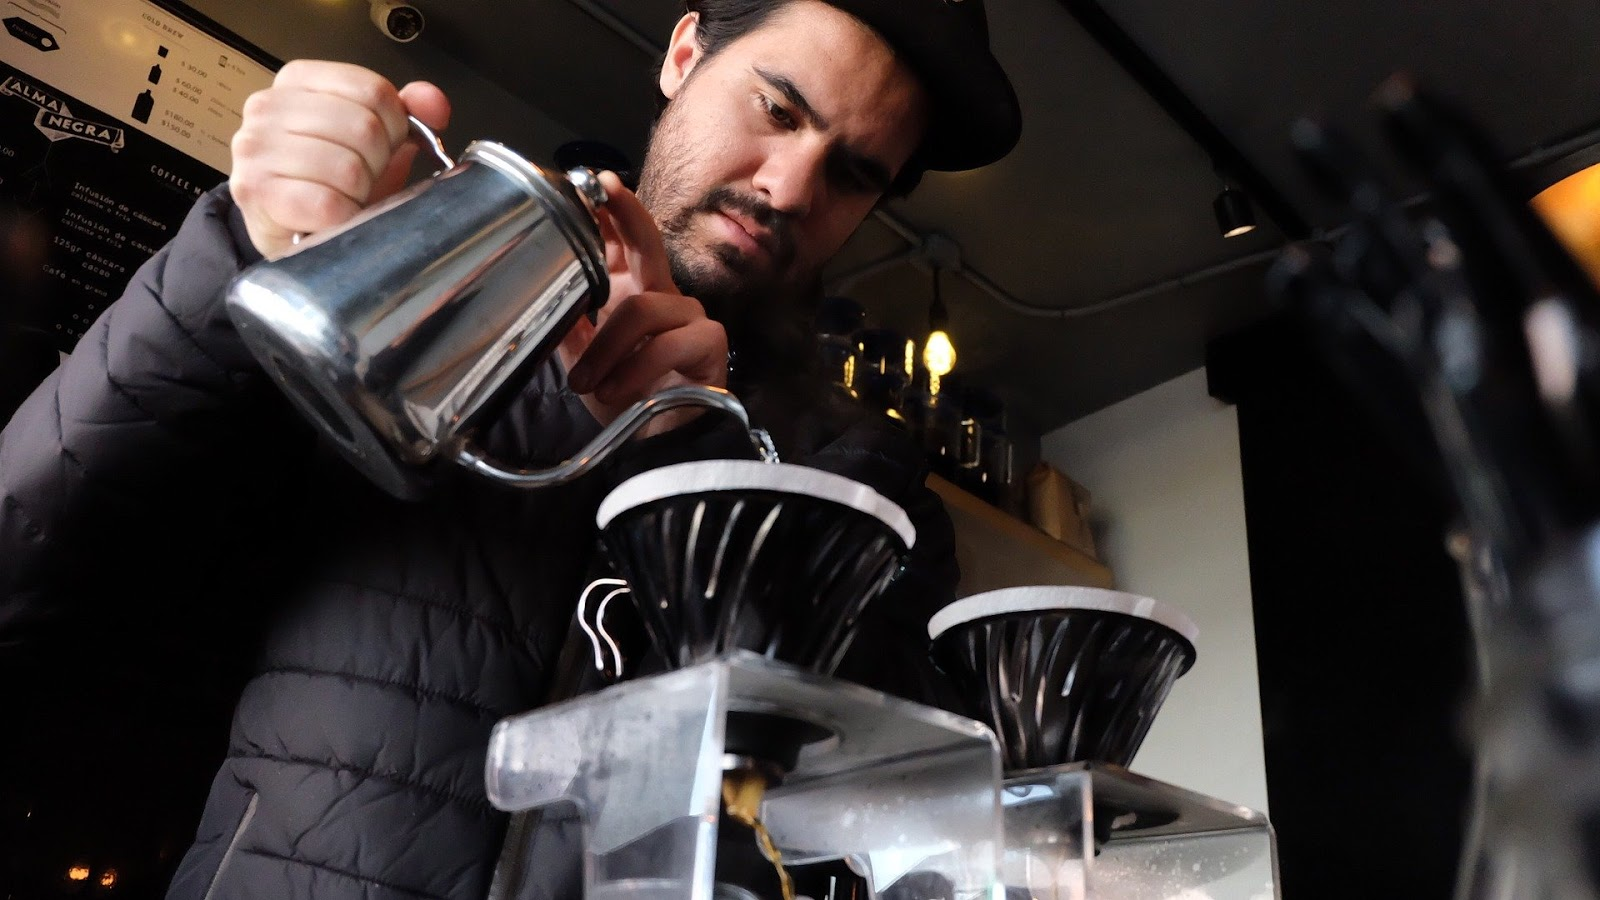 Barista job description: Man pours water into pourover cup